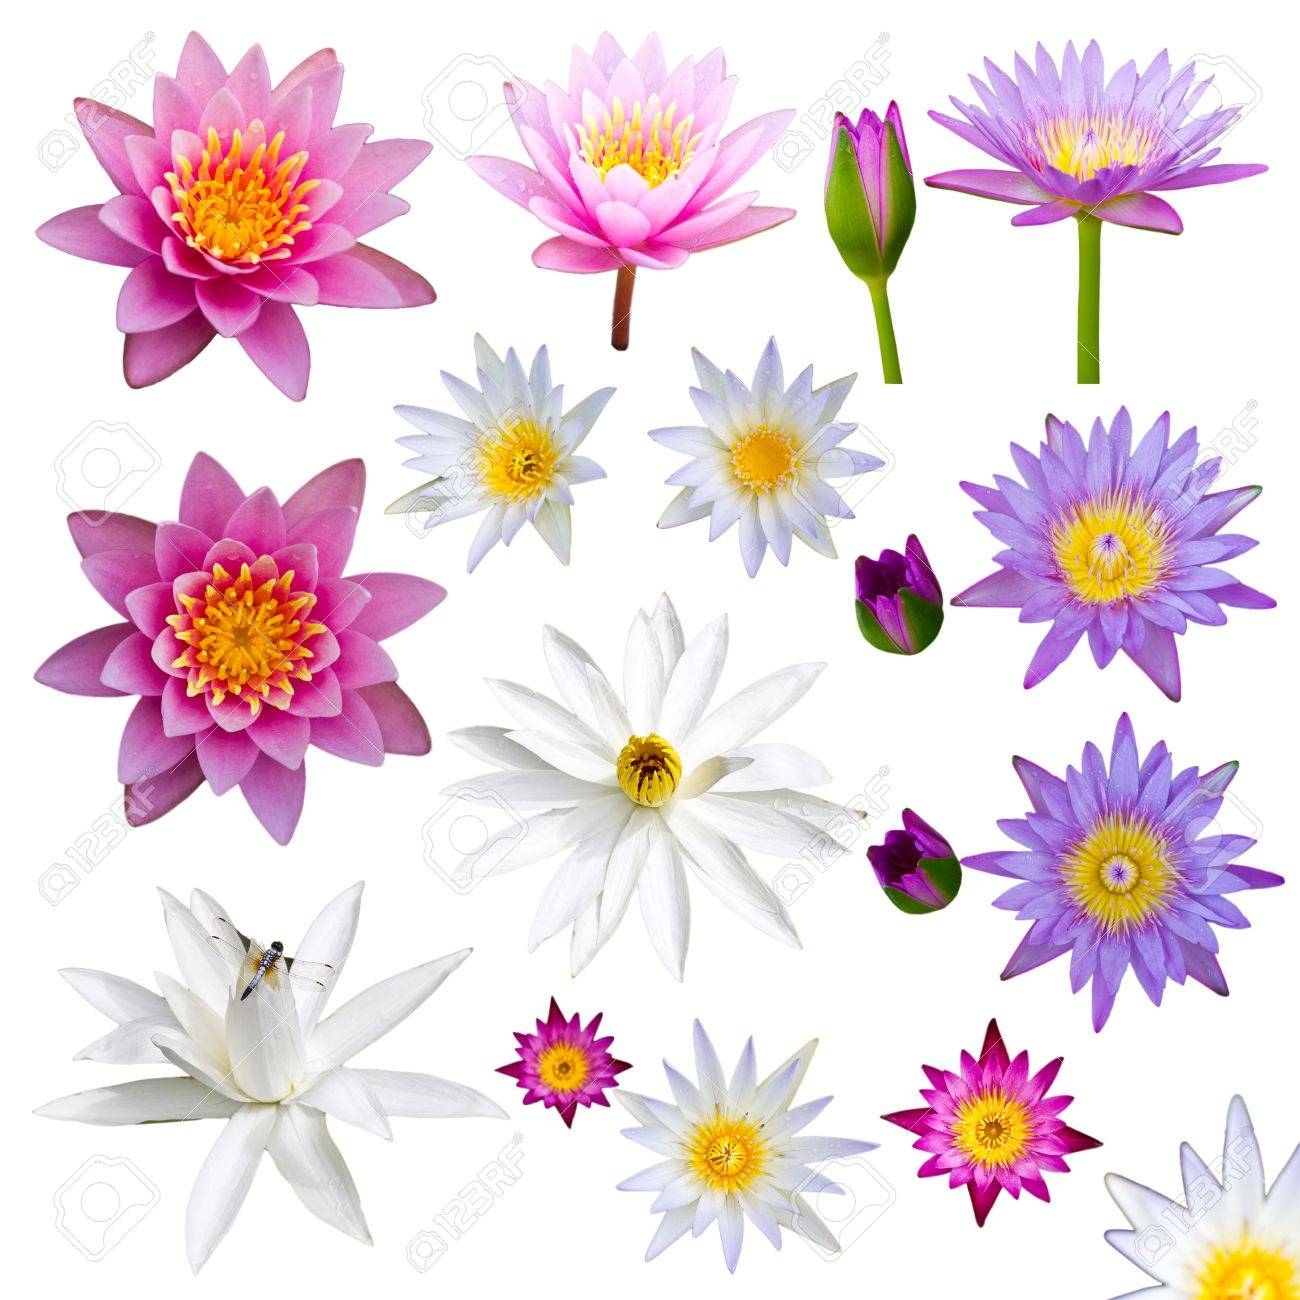 Isolate many lotus flowers with small colorful flowers, a variety of perspectives Stock Photo - 16484723